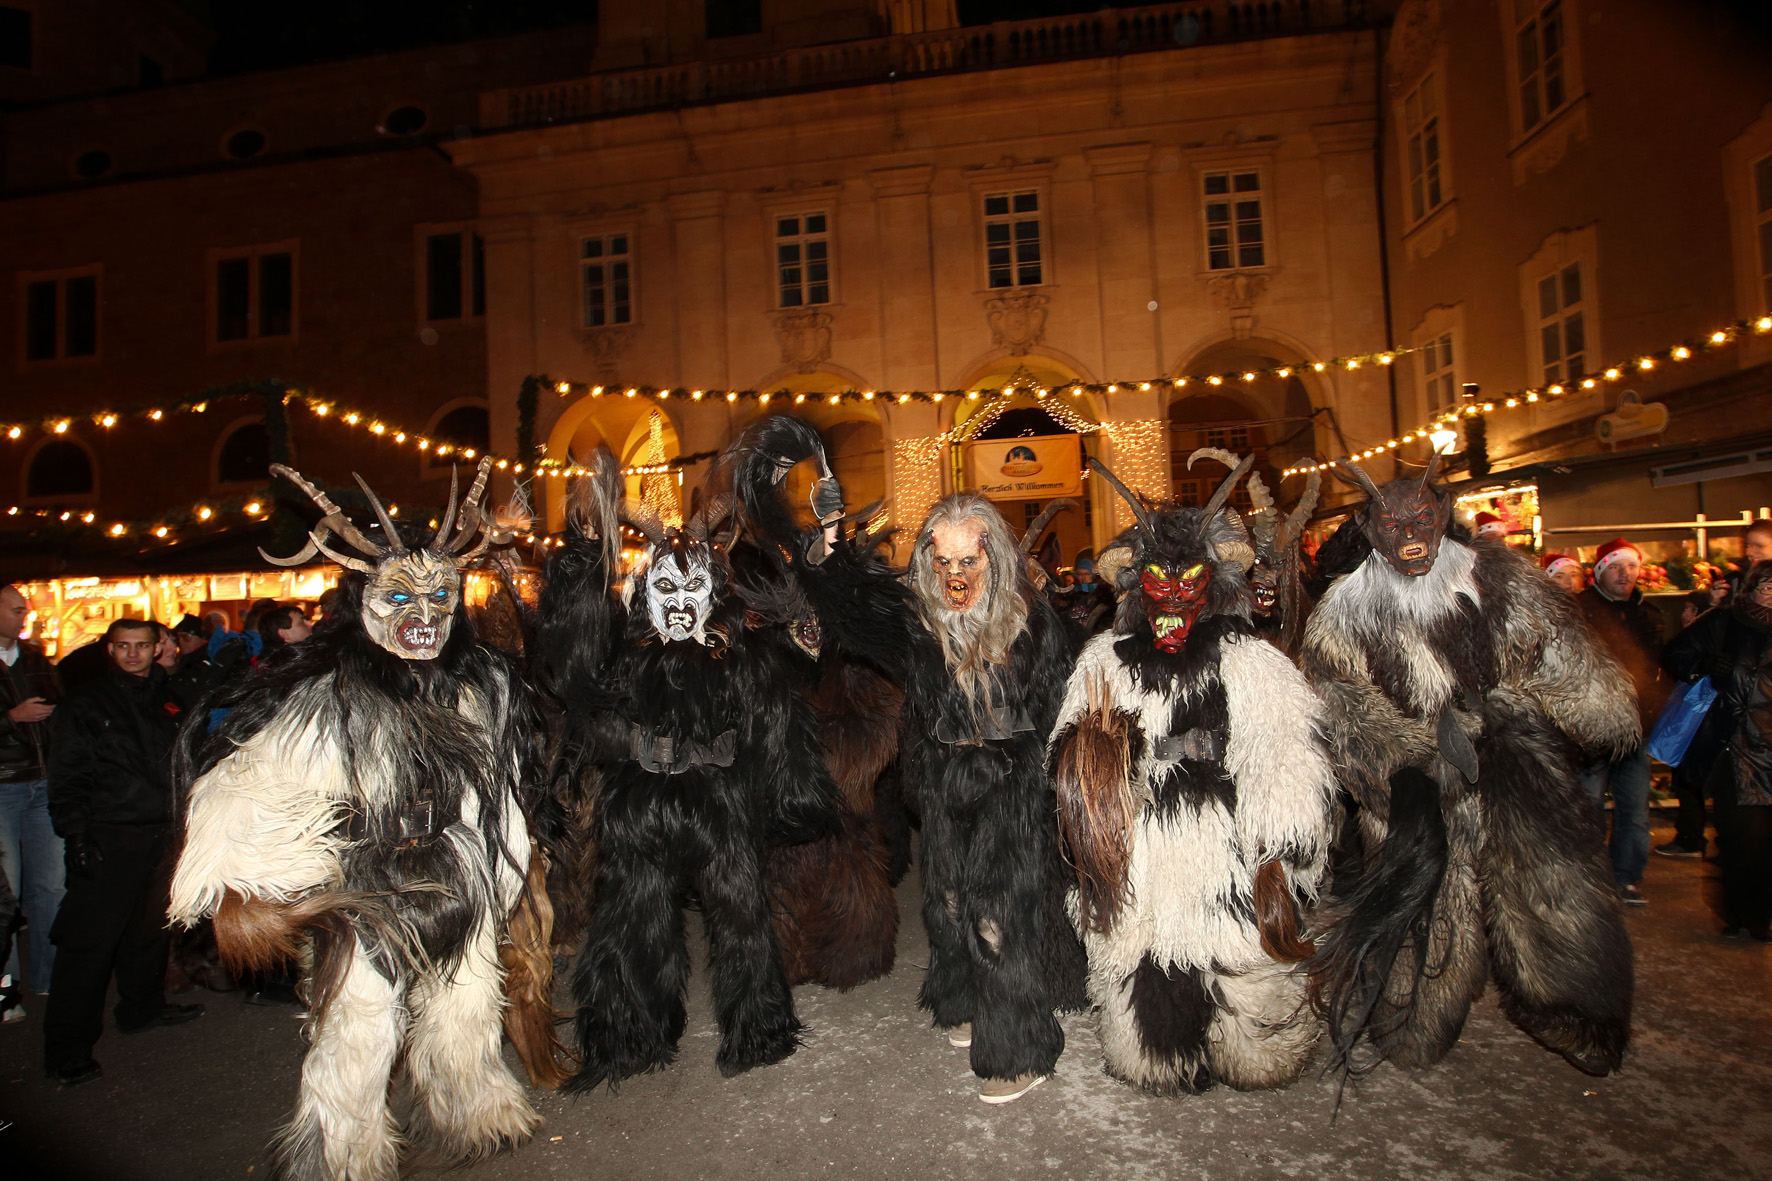 Krampus revels at the Salzburg Christmas Market, 2011; photo by Neumayr/MMV 05.12.2011